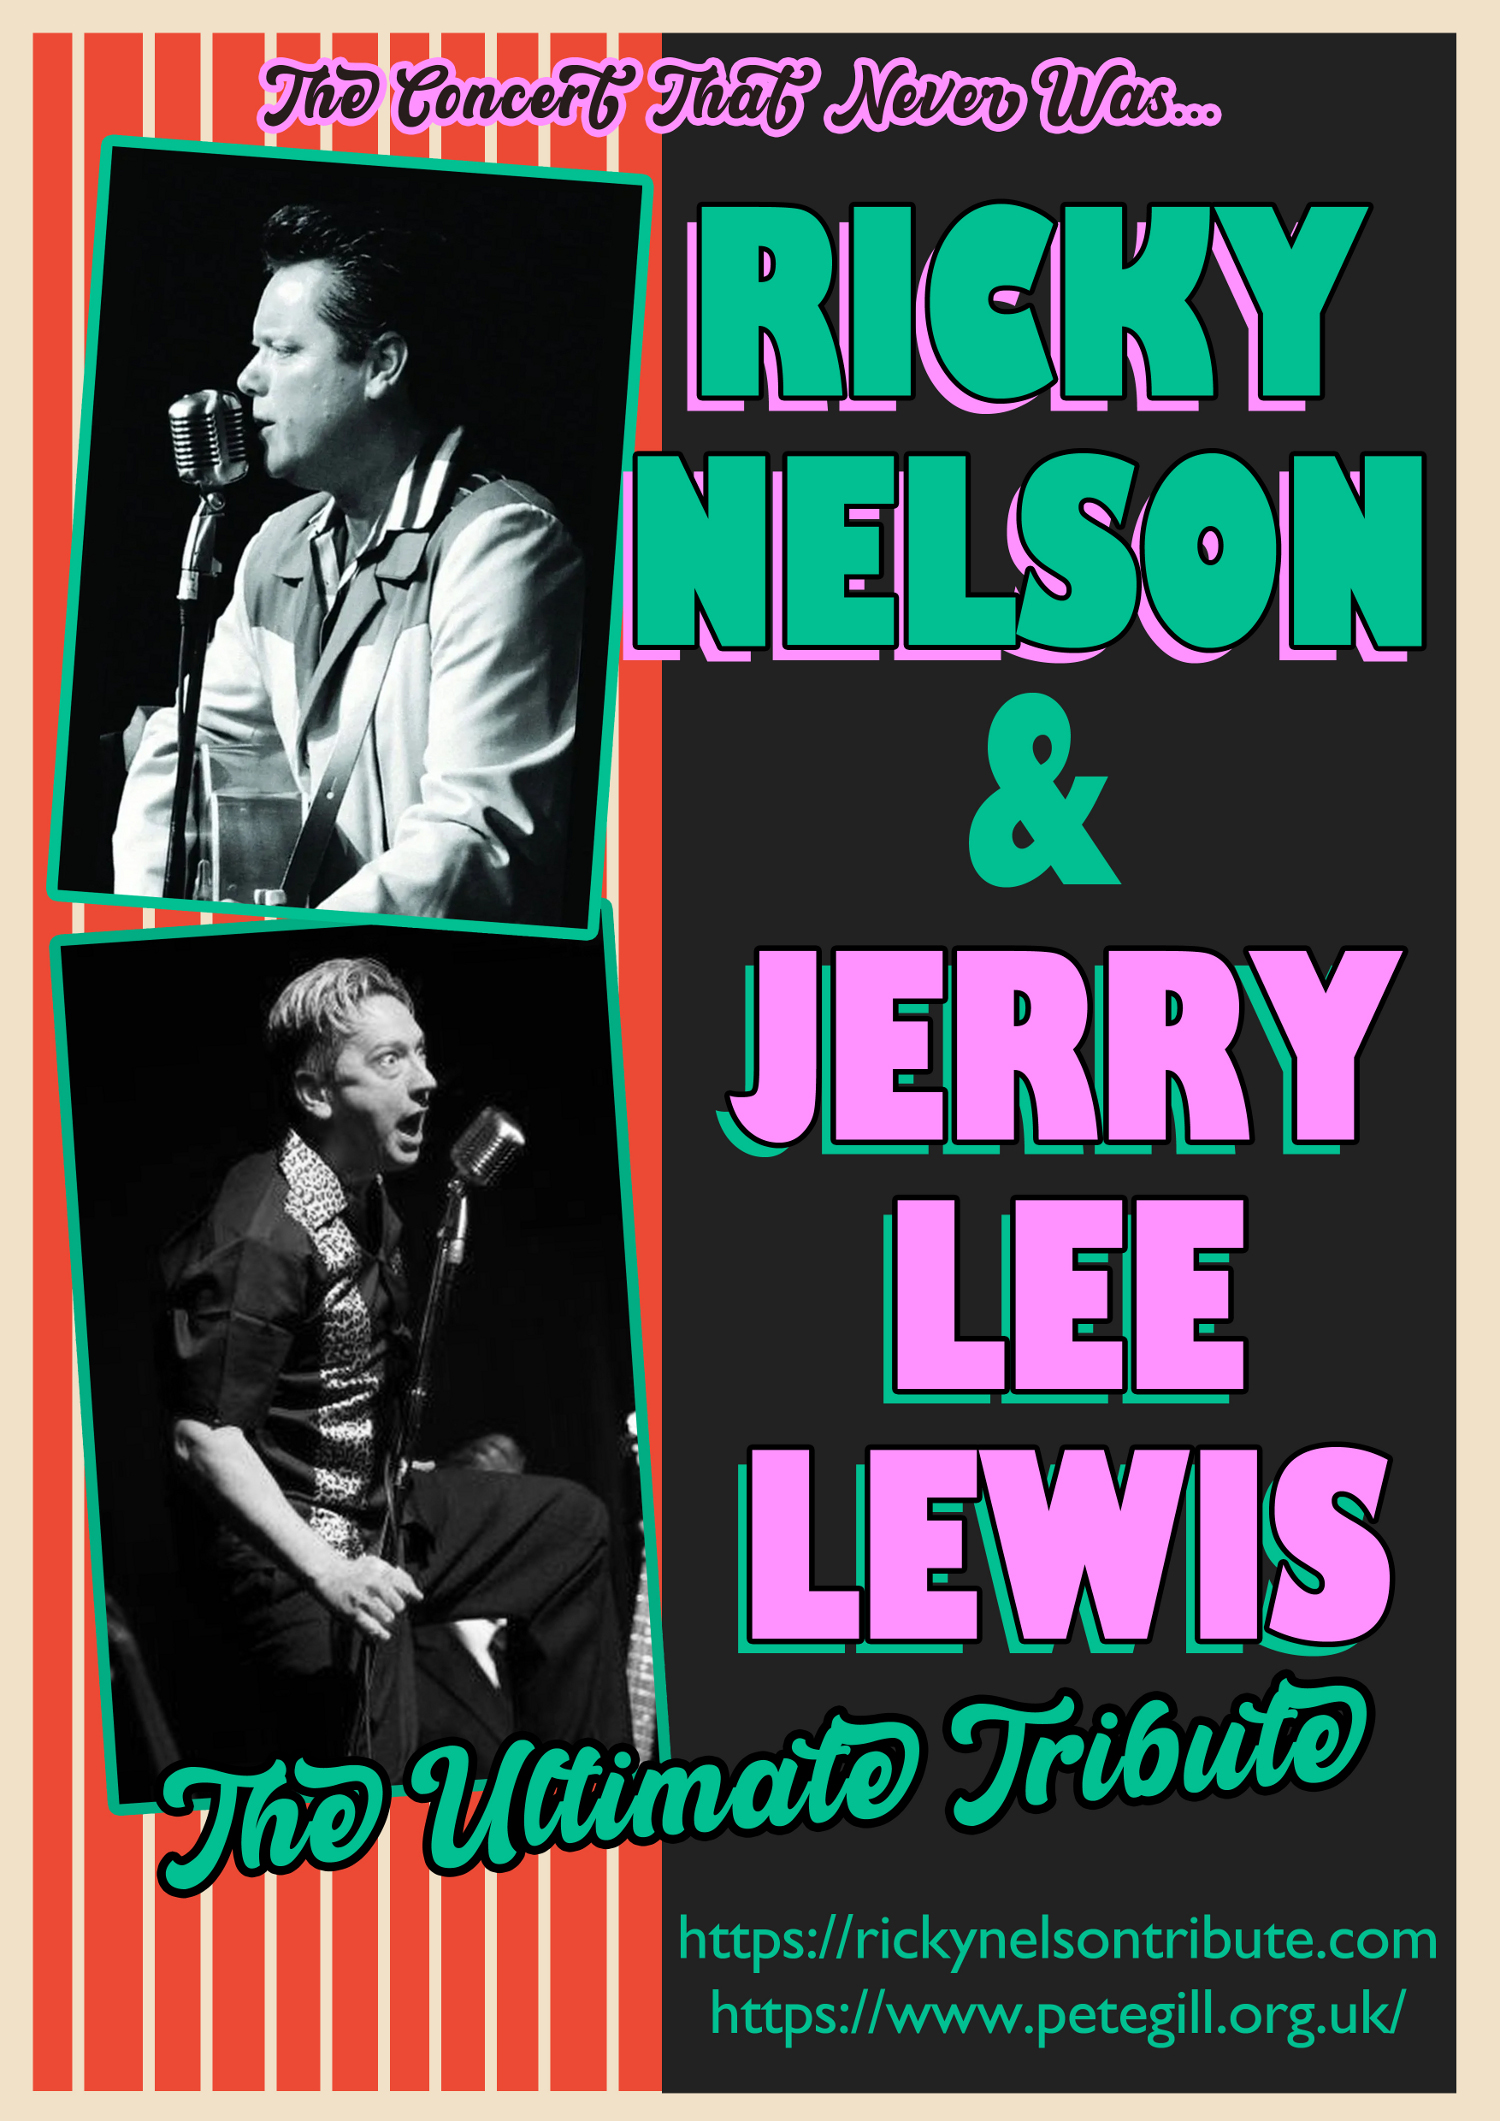 The Concert That Never Was - Ricky Nelson & Jerry Lee Lewis!